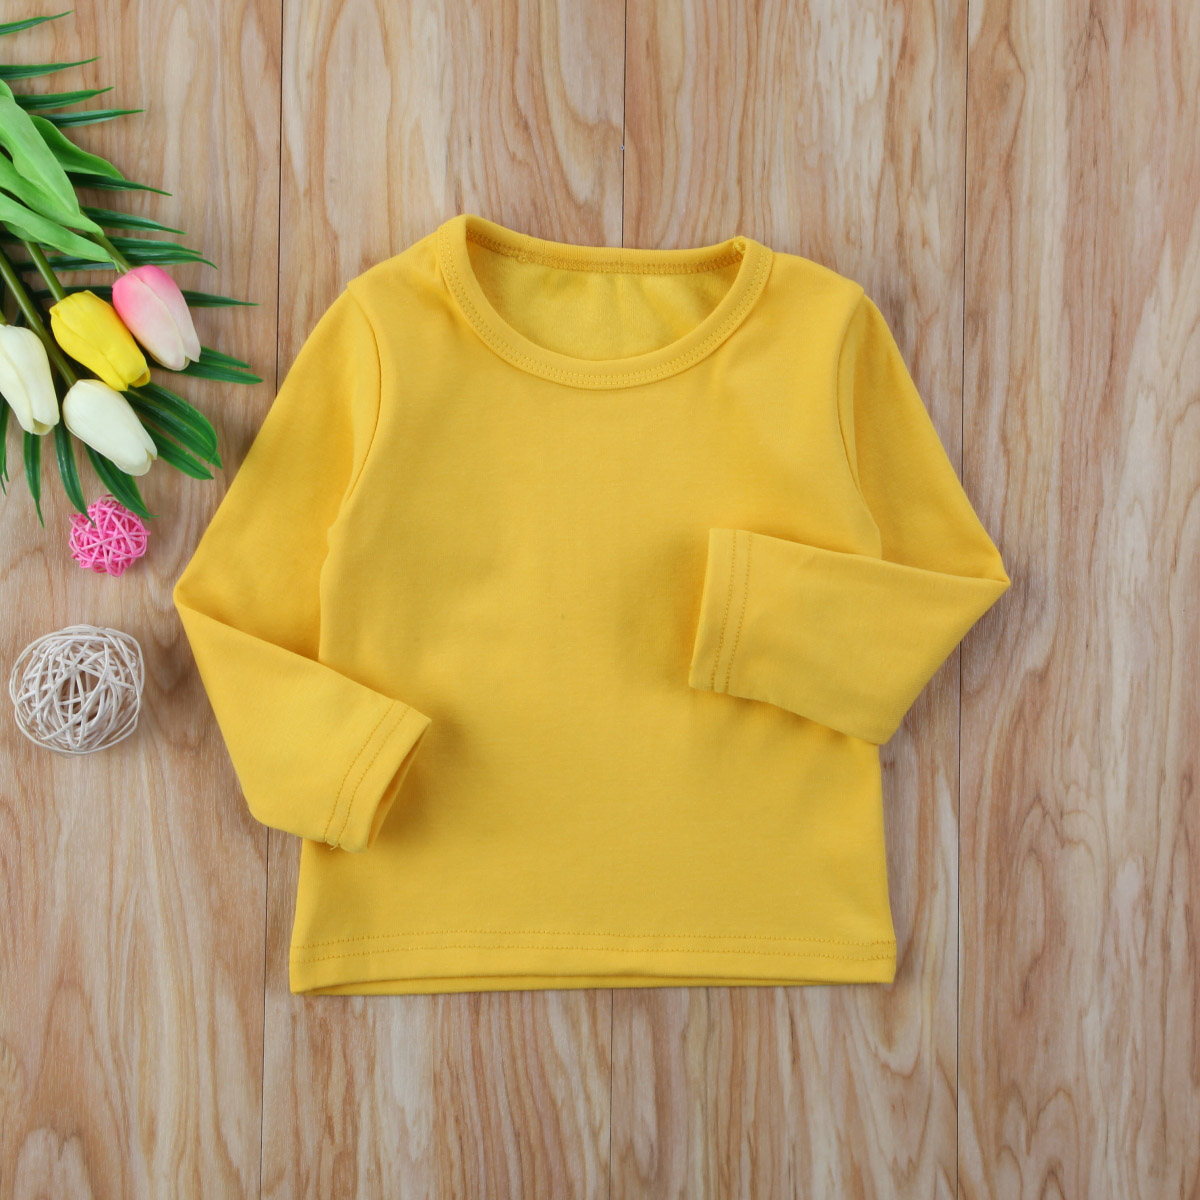 Toddler Infant Kids Baby Boys Girls Cotton Warm Clothes Tops Outwears 5